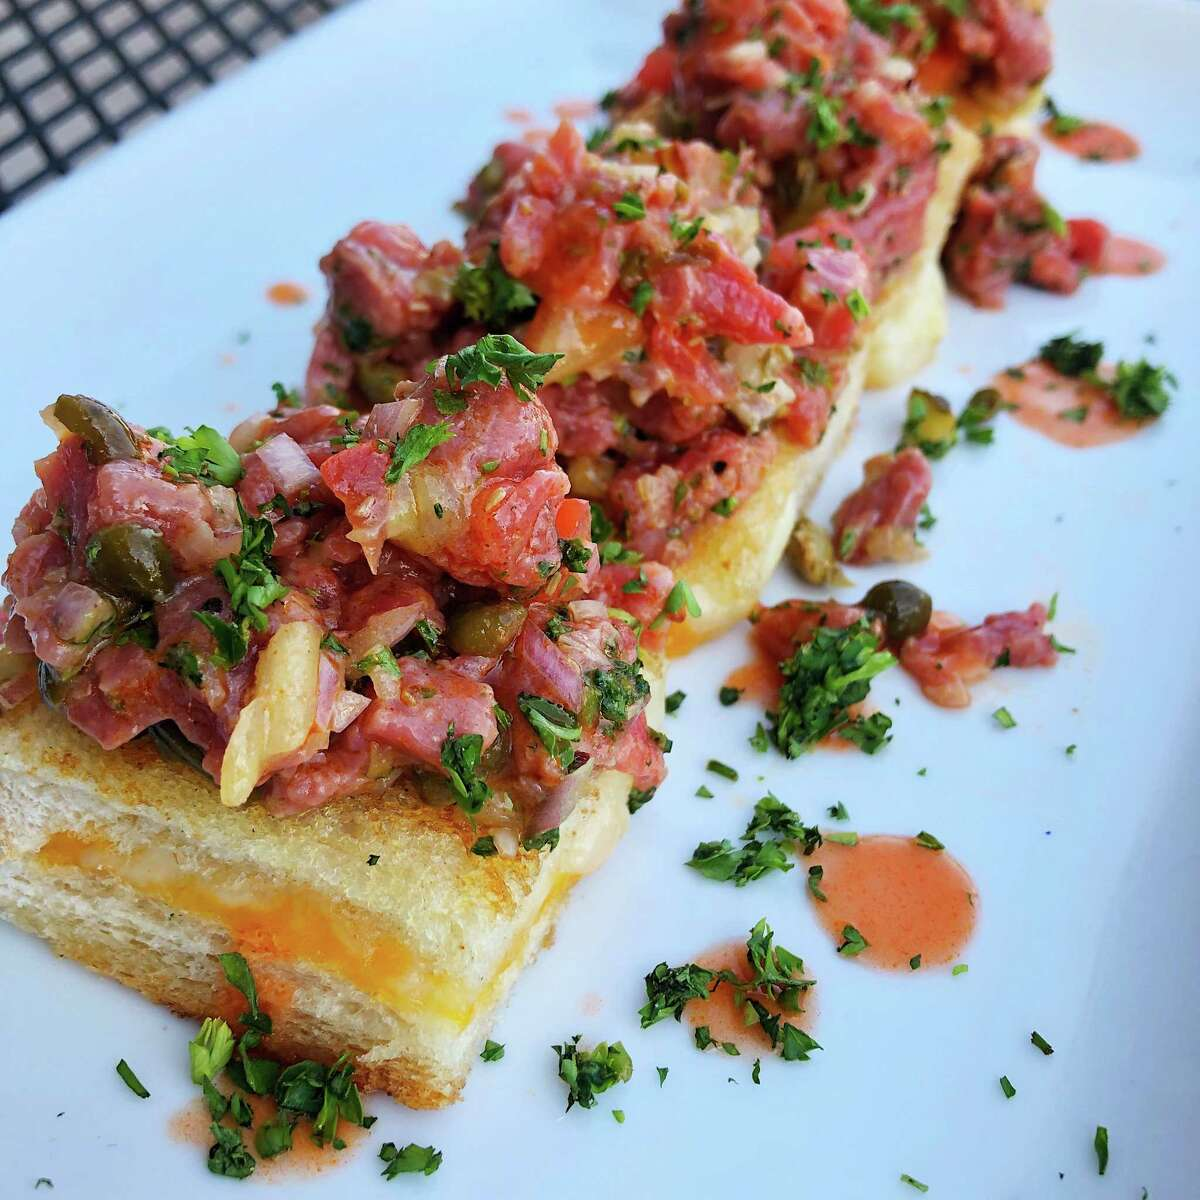 Beef tartare tartine (diced raw beef on a five-cheese grilled sandwich at Max's Wine Dive. Chef Brandi Key is now overseeing the culinary program at the popular Houston restaurant and wine bar.